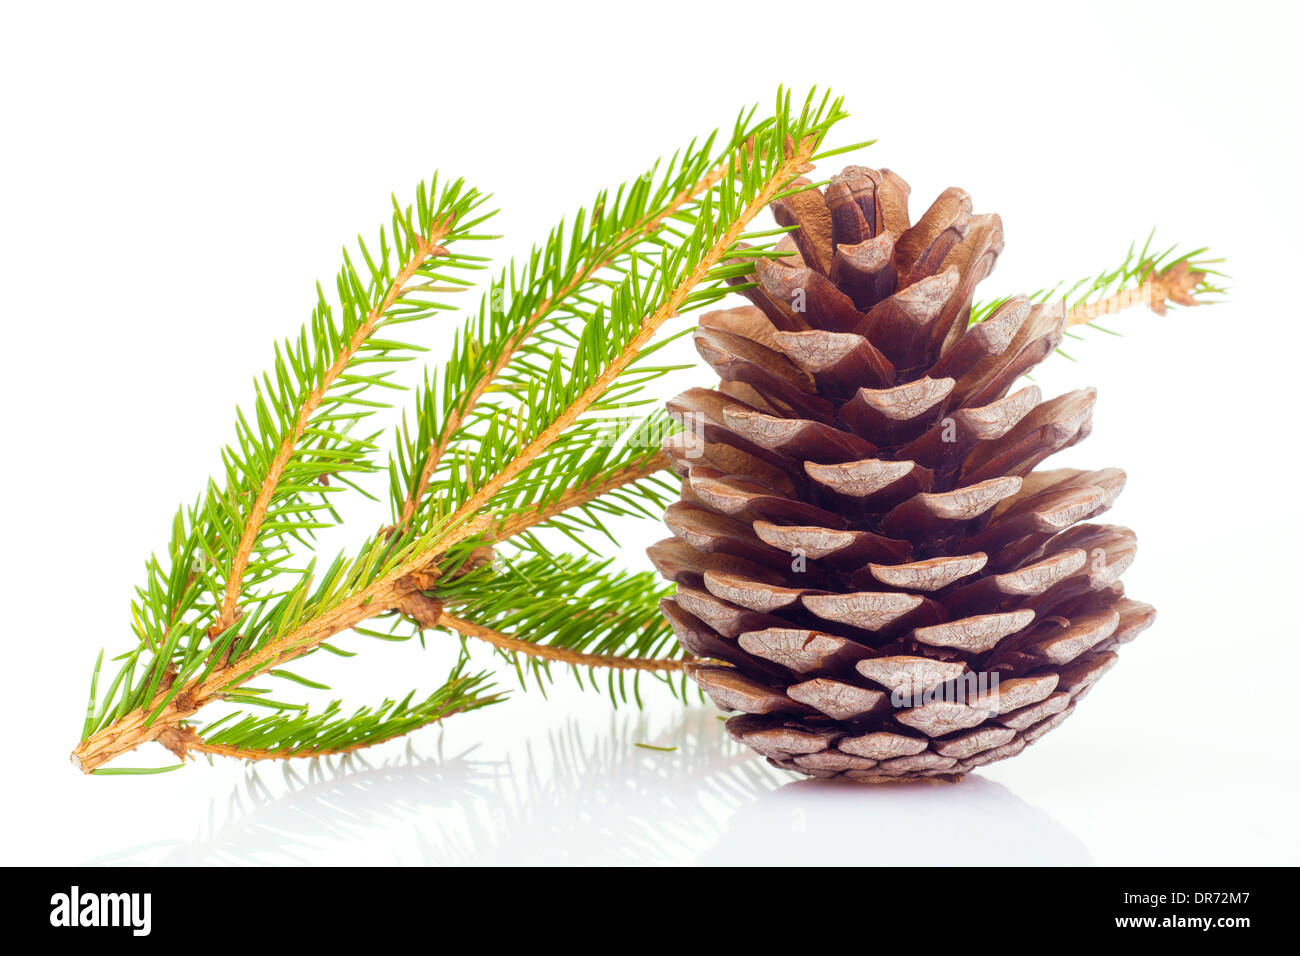 Fir cone and spruce branch on white background - Stock Image